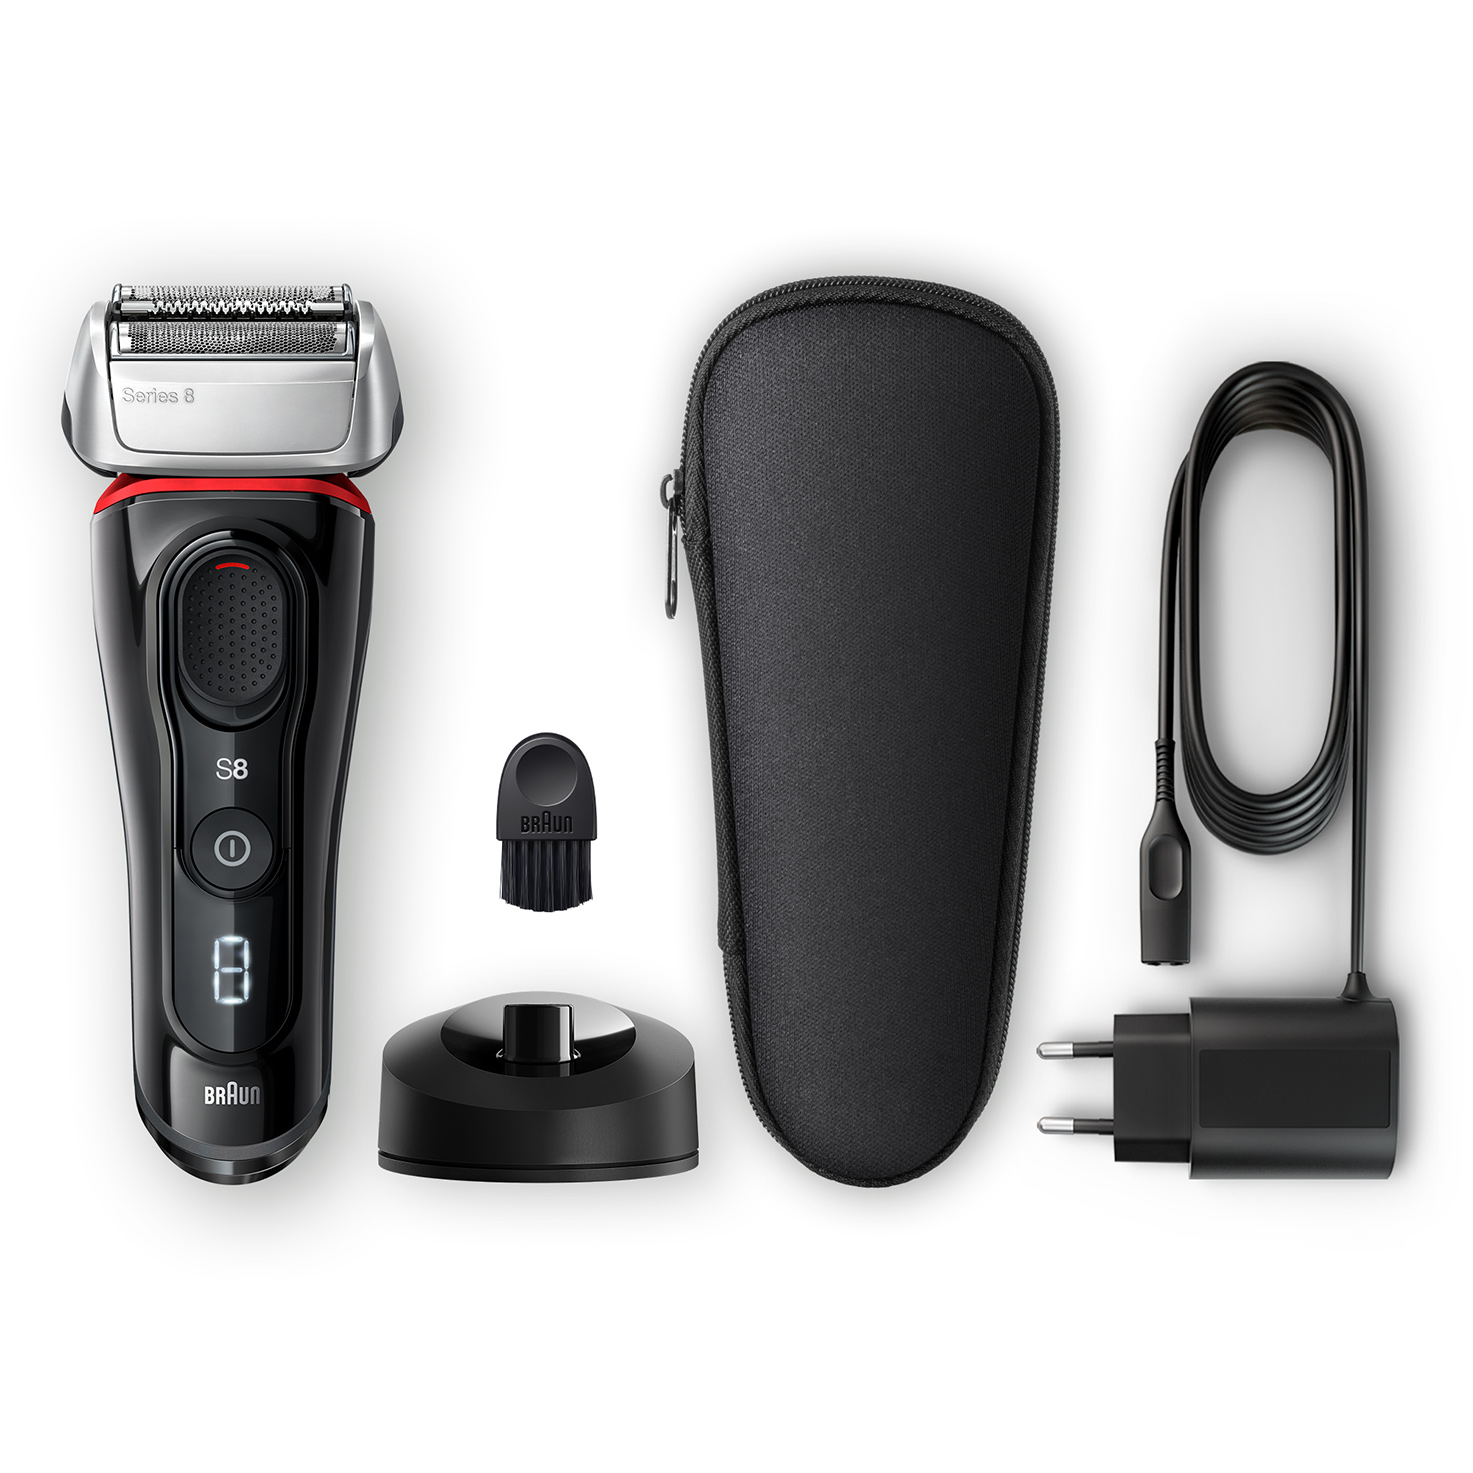 Series 8 8320s shaver - What´s in the box